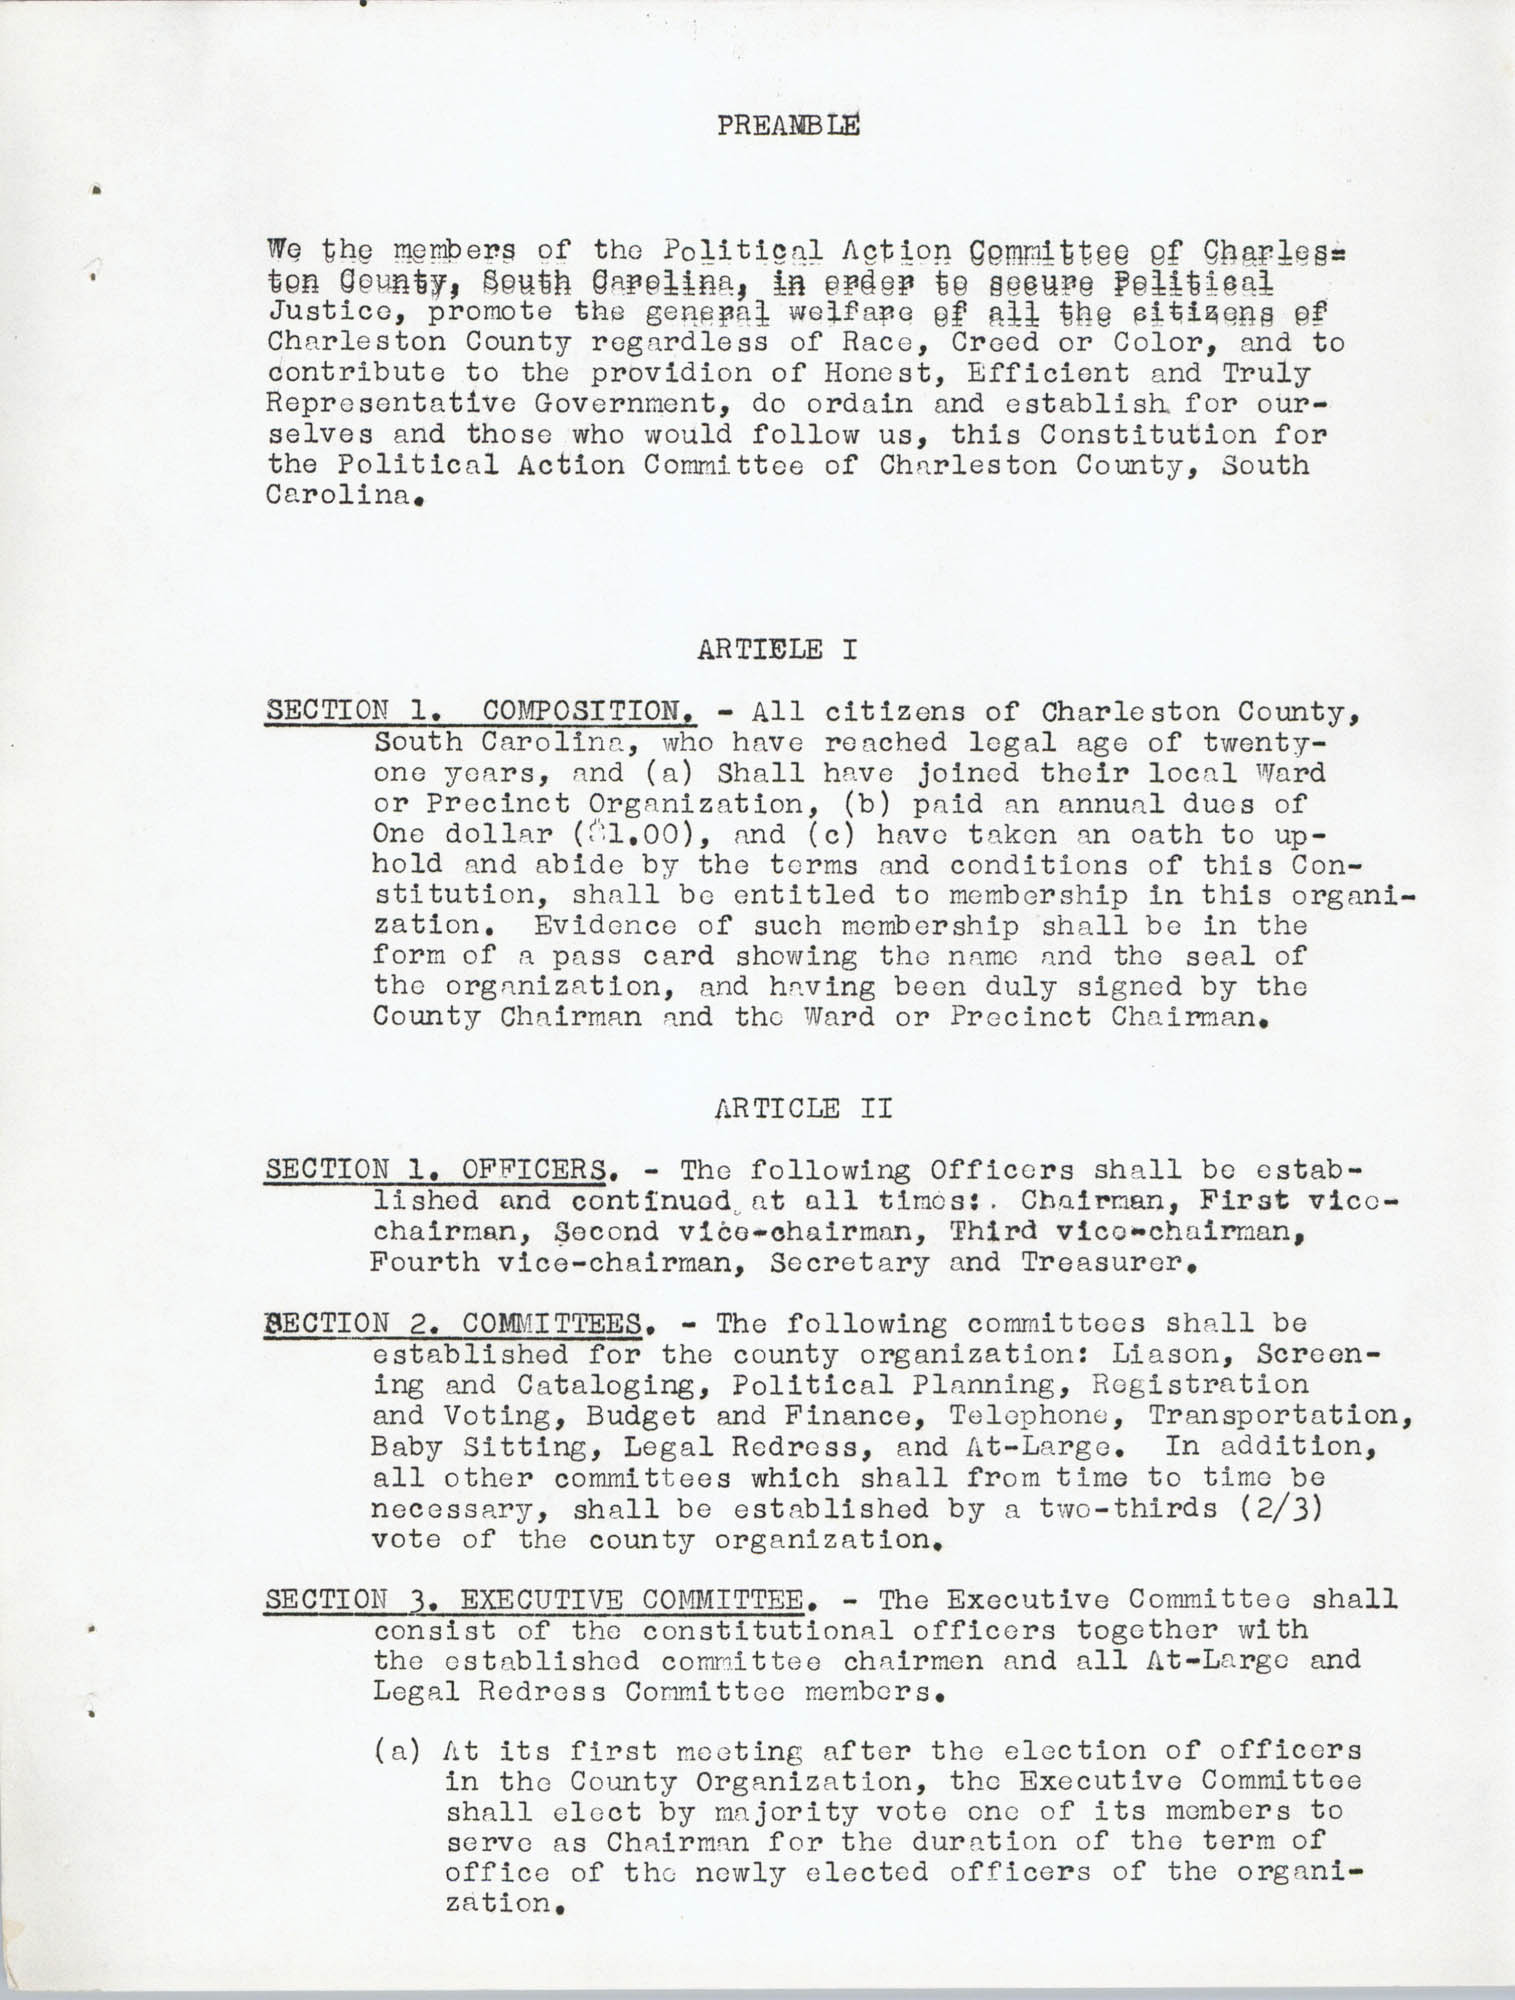 Constitution and By-Laws, Page 1